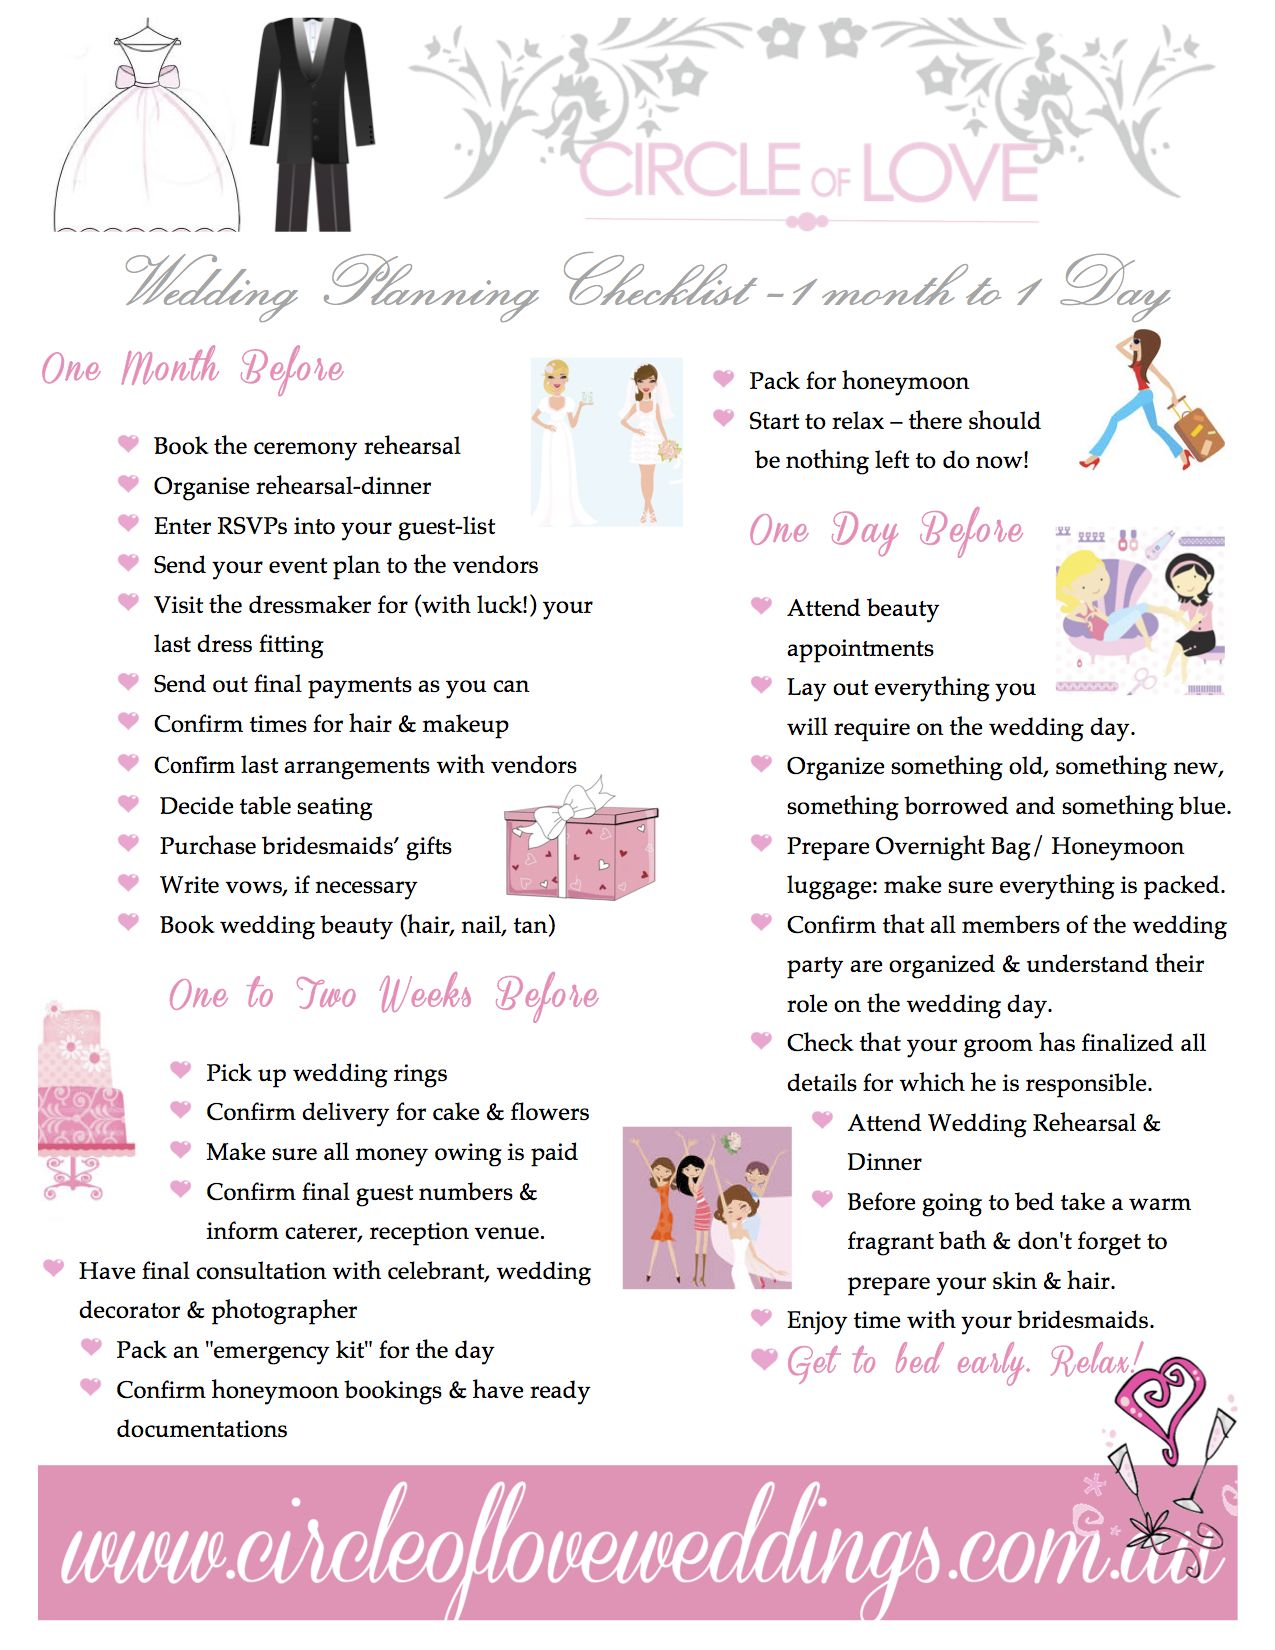 3 Wedding Planning Checklist 1 Month Before Our Free Timeline Checklists Created By Www Circleofloveweddings Au